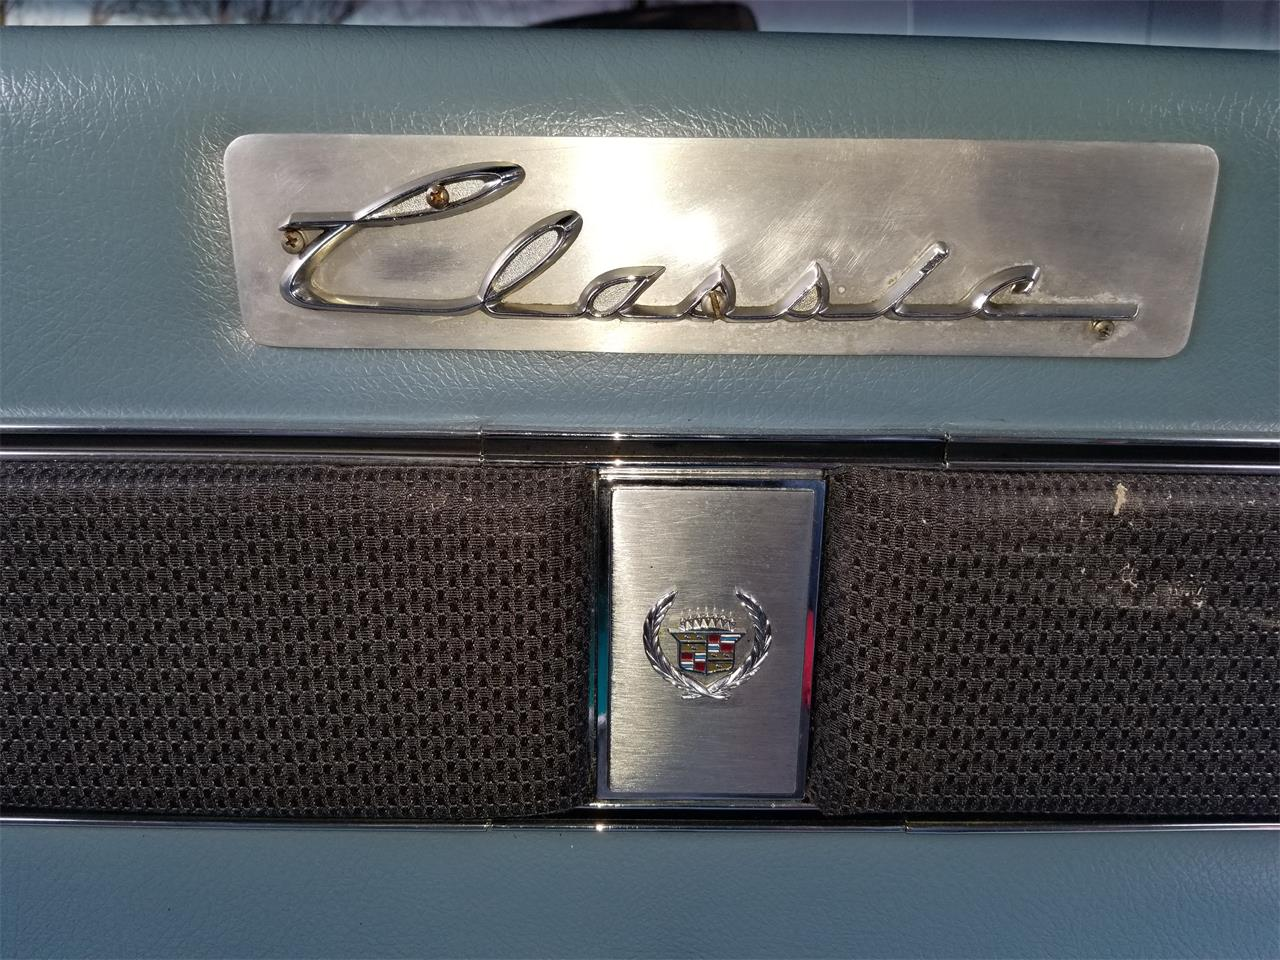 Large Picture of Classic '67 Fleetwood Limousine - $13,000.00 Offered by a Private Seller - OD55